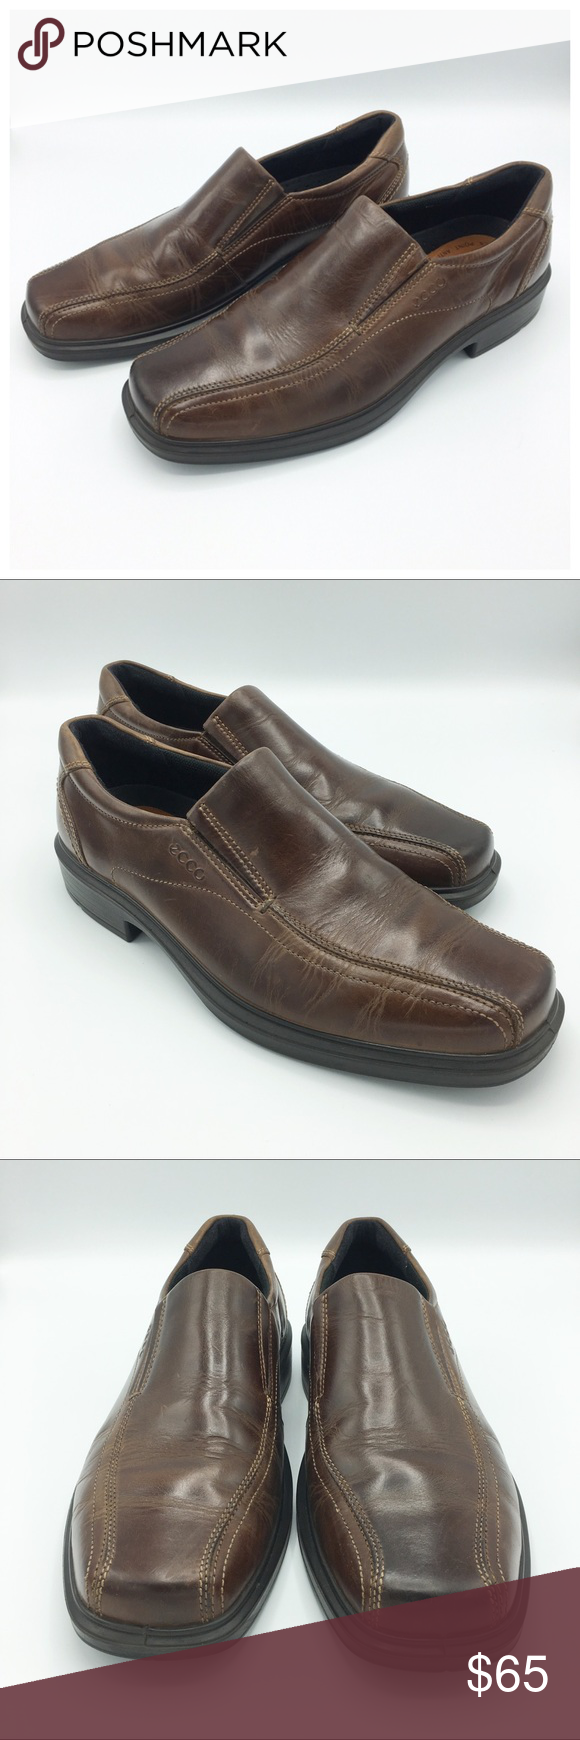 96eacb588f2 Ecco Brown Leather Helsinki Slip On Shoes Ecco Brown Leather Helsinki Slip  On Shoes Color  Brown Condition  NWOB Feature  Authentic Comfort Light PU  ...